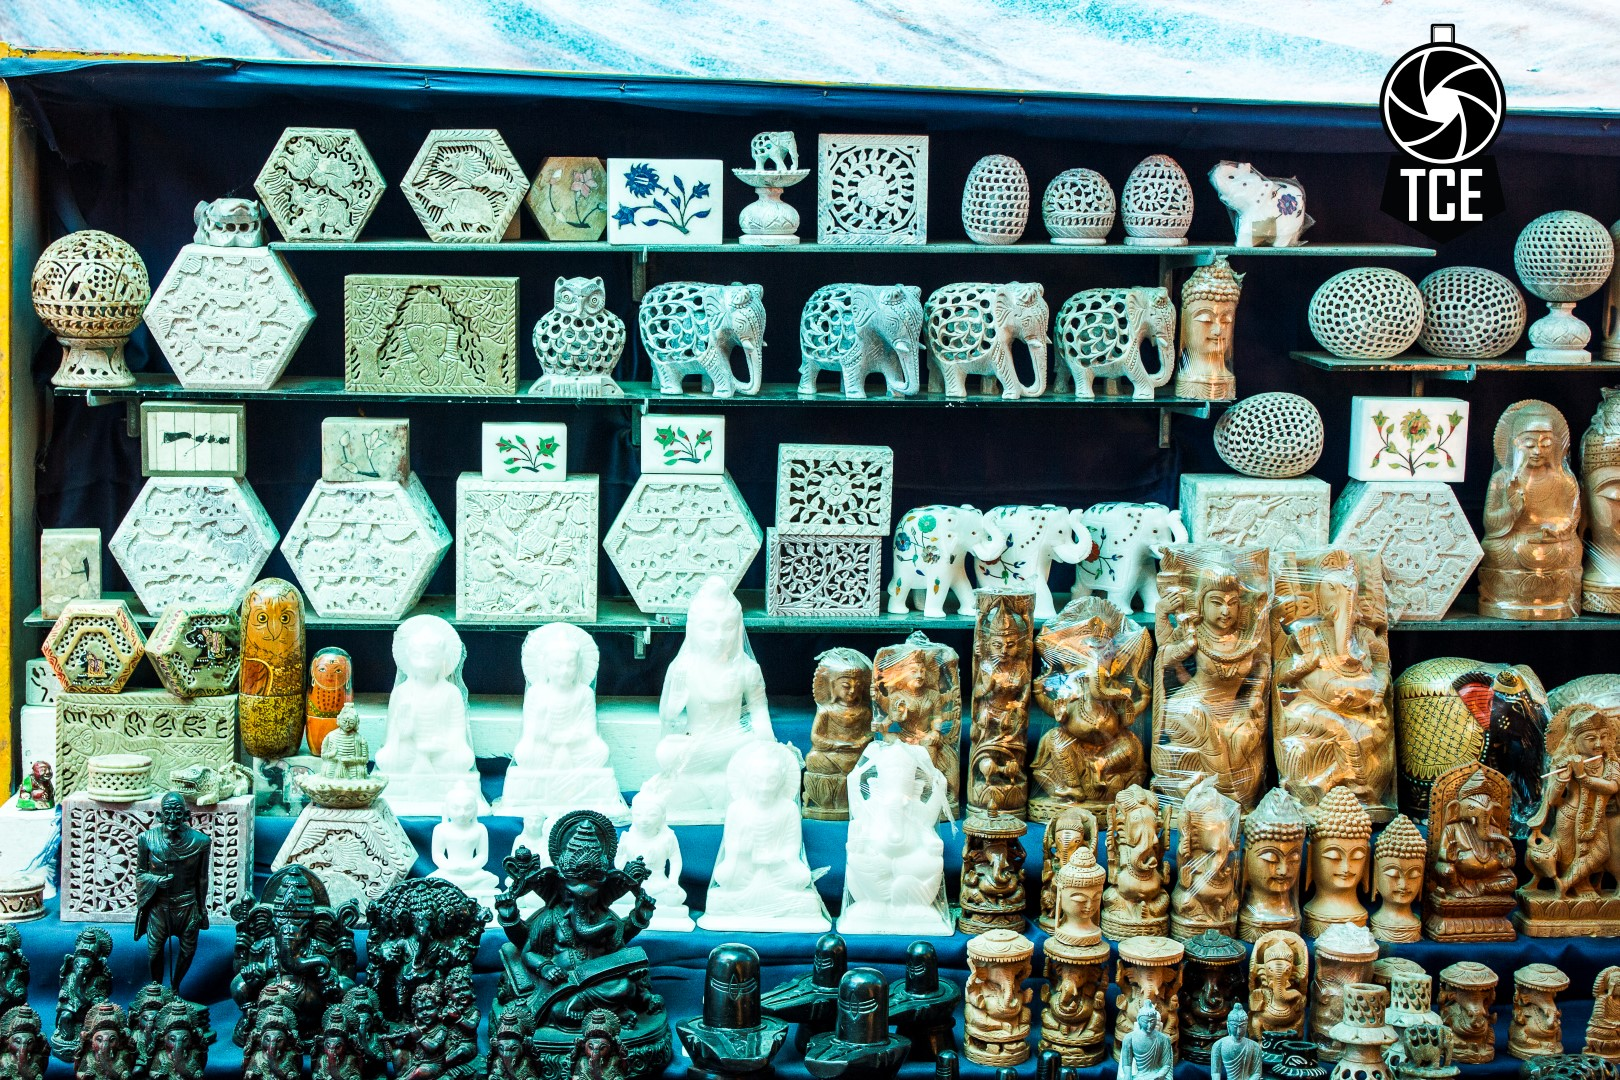 On Sale, Souvenirs at Elephanta